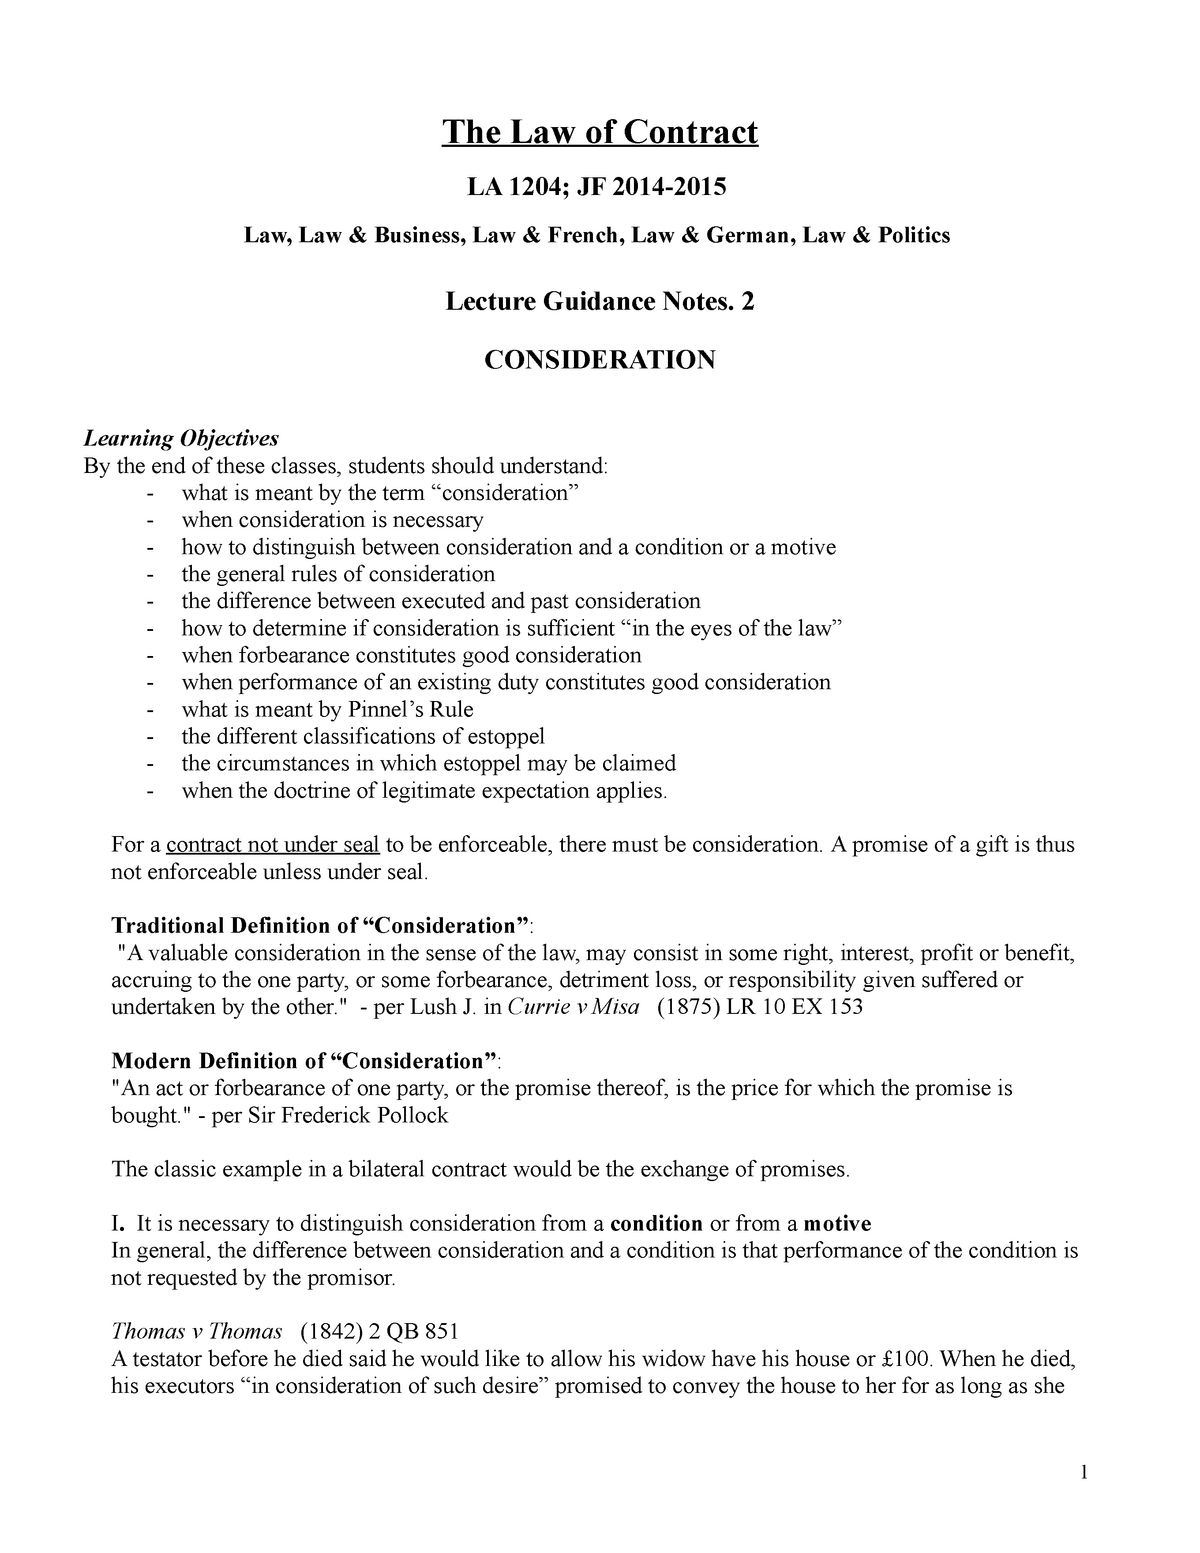 Consideration - Detailed study notes made on the basis of Eoin O'Dell's  contract lectures - StuDocu